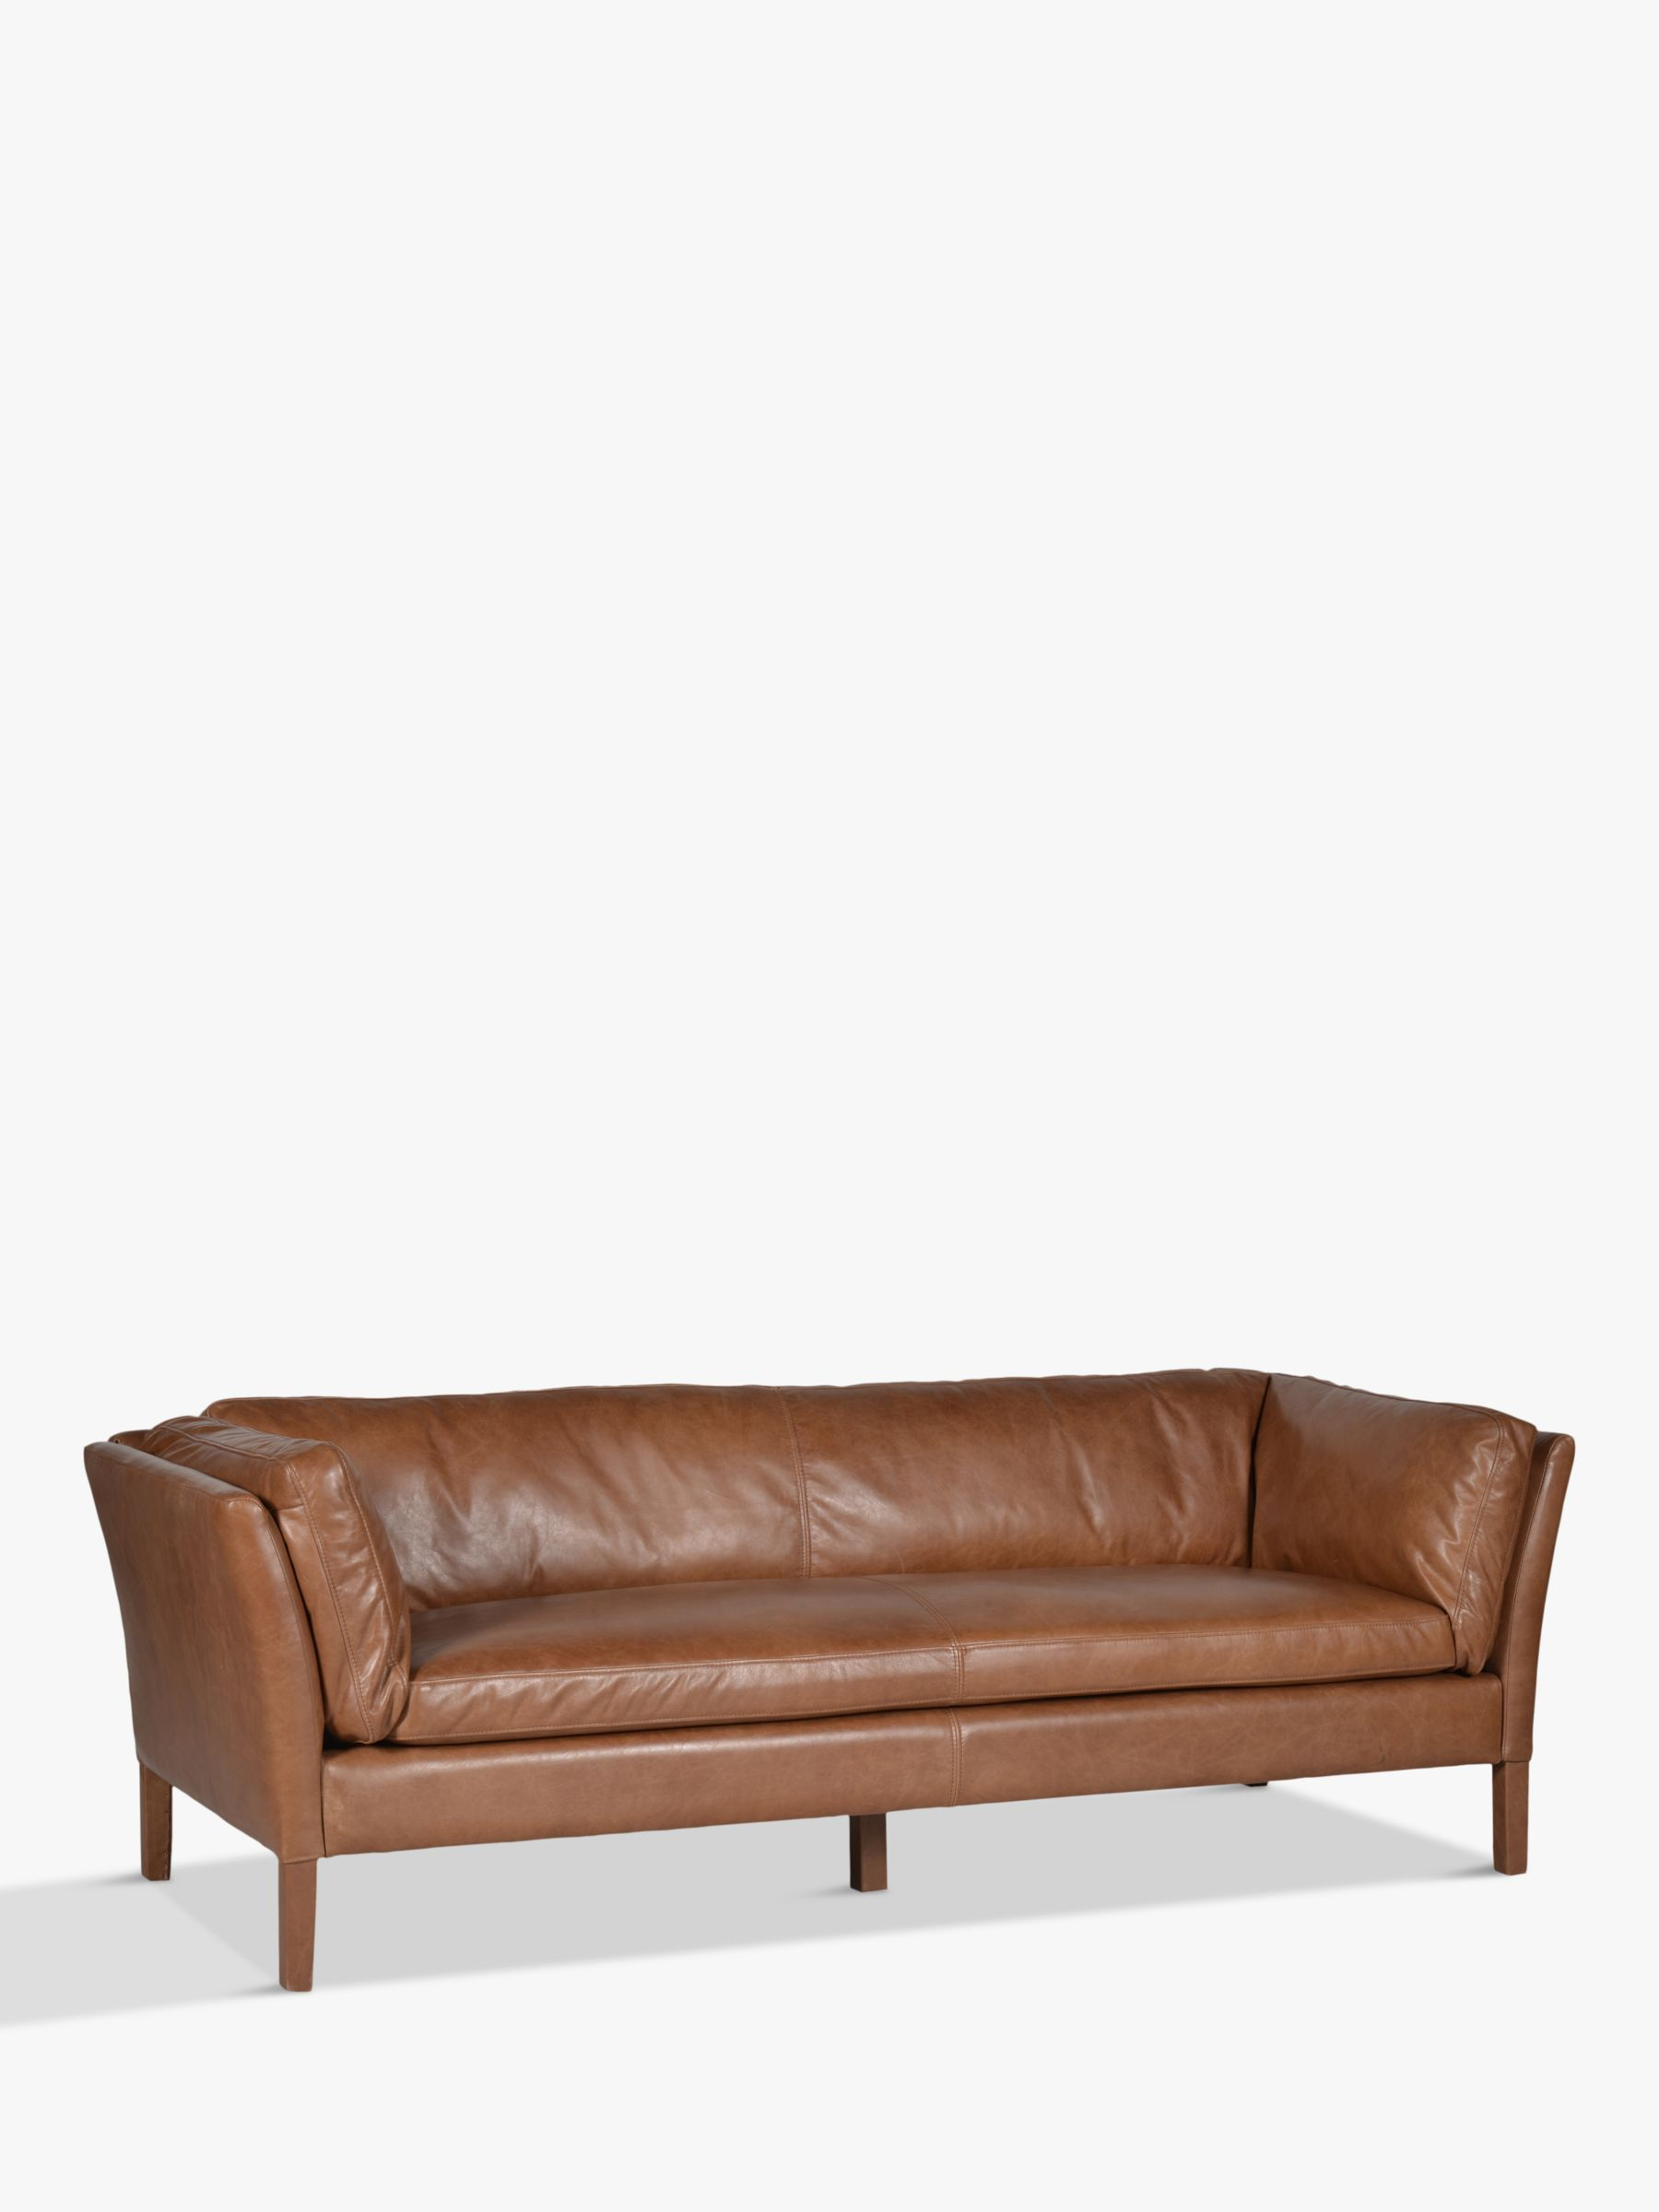 Halo Halo Groucho Large 3 Seater Leather Sofa